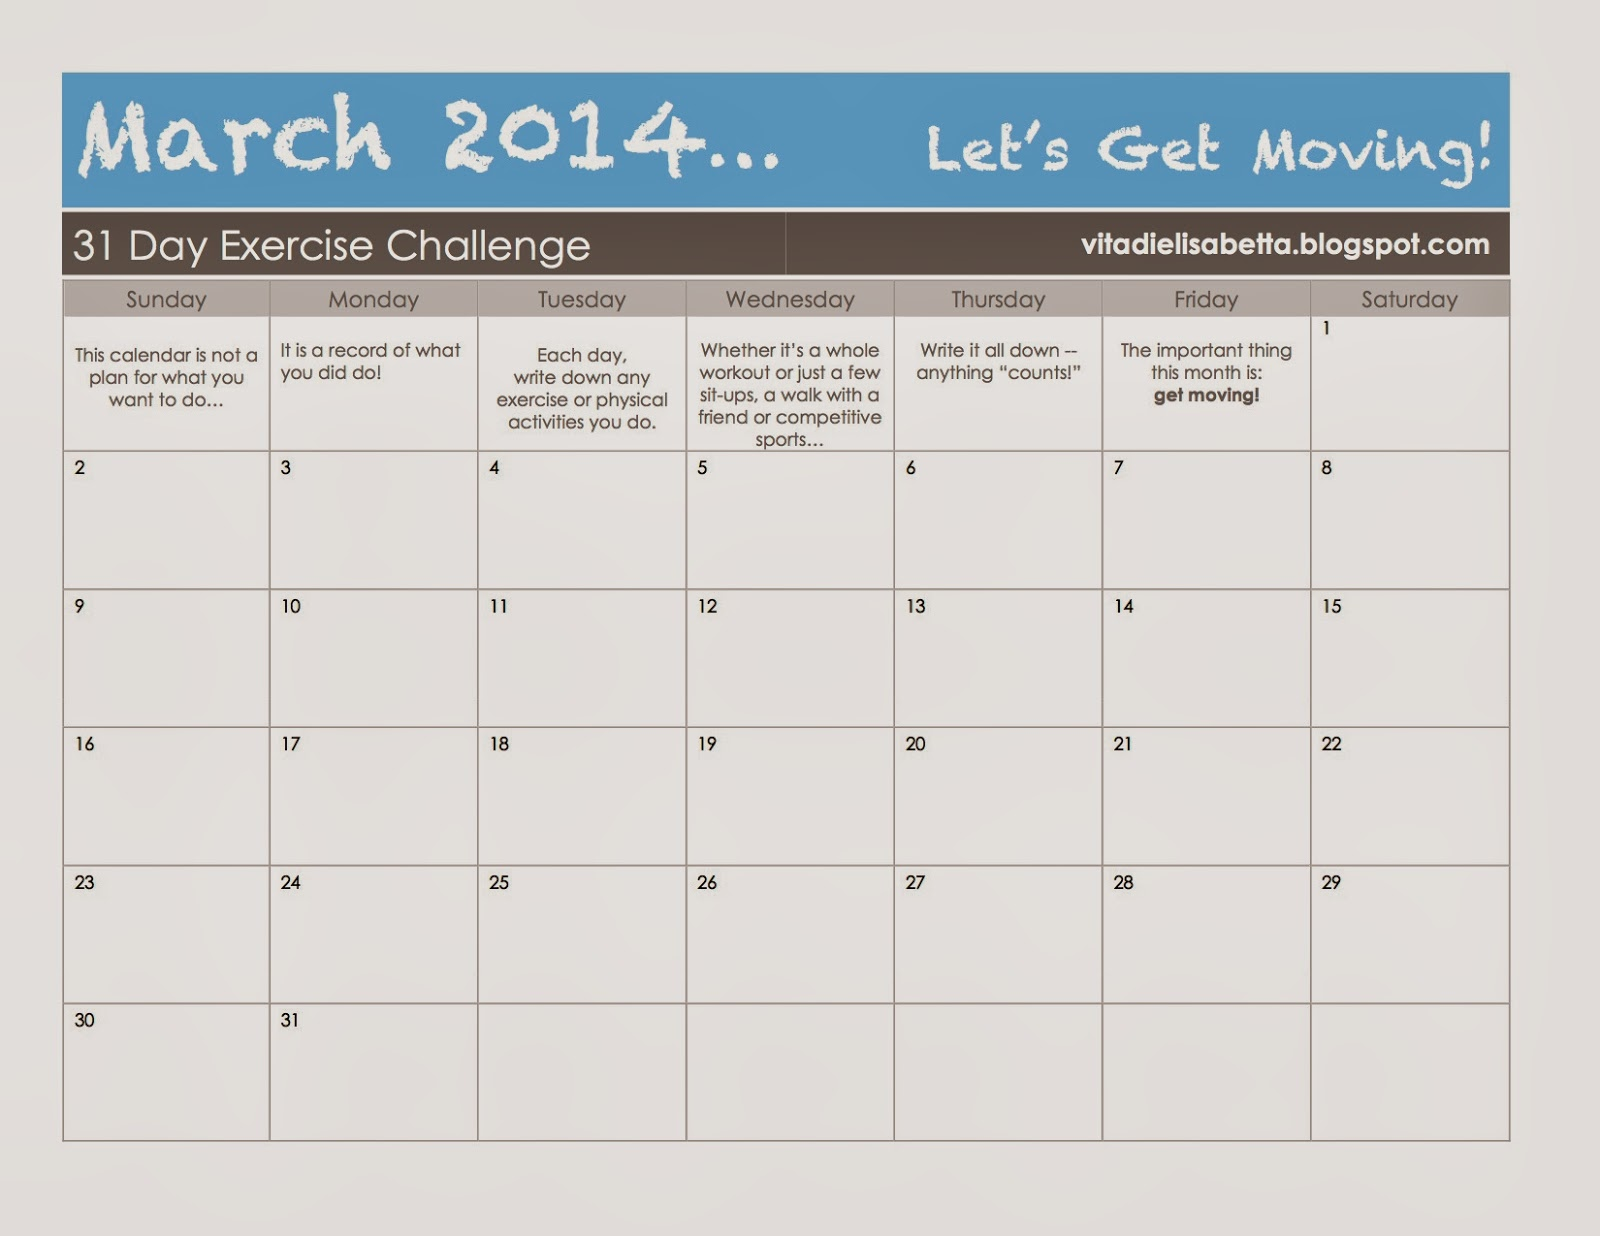 Let's Get Moving: March 2014